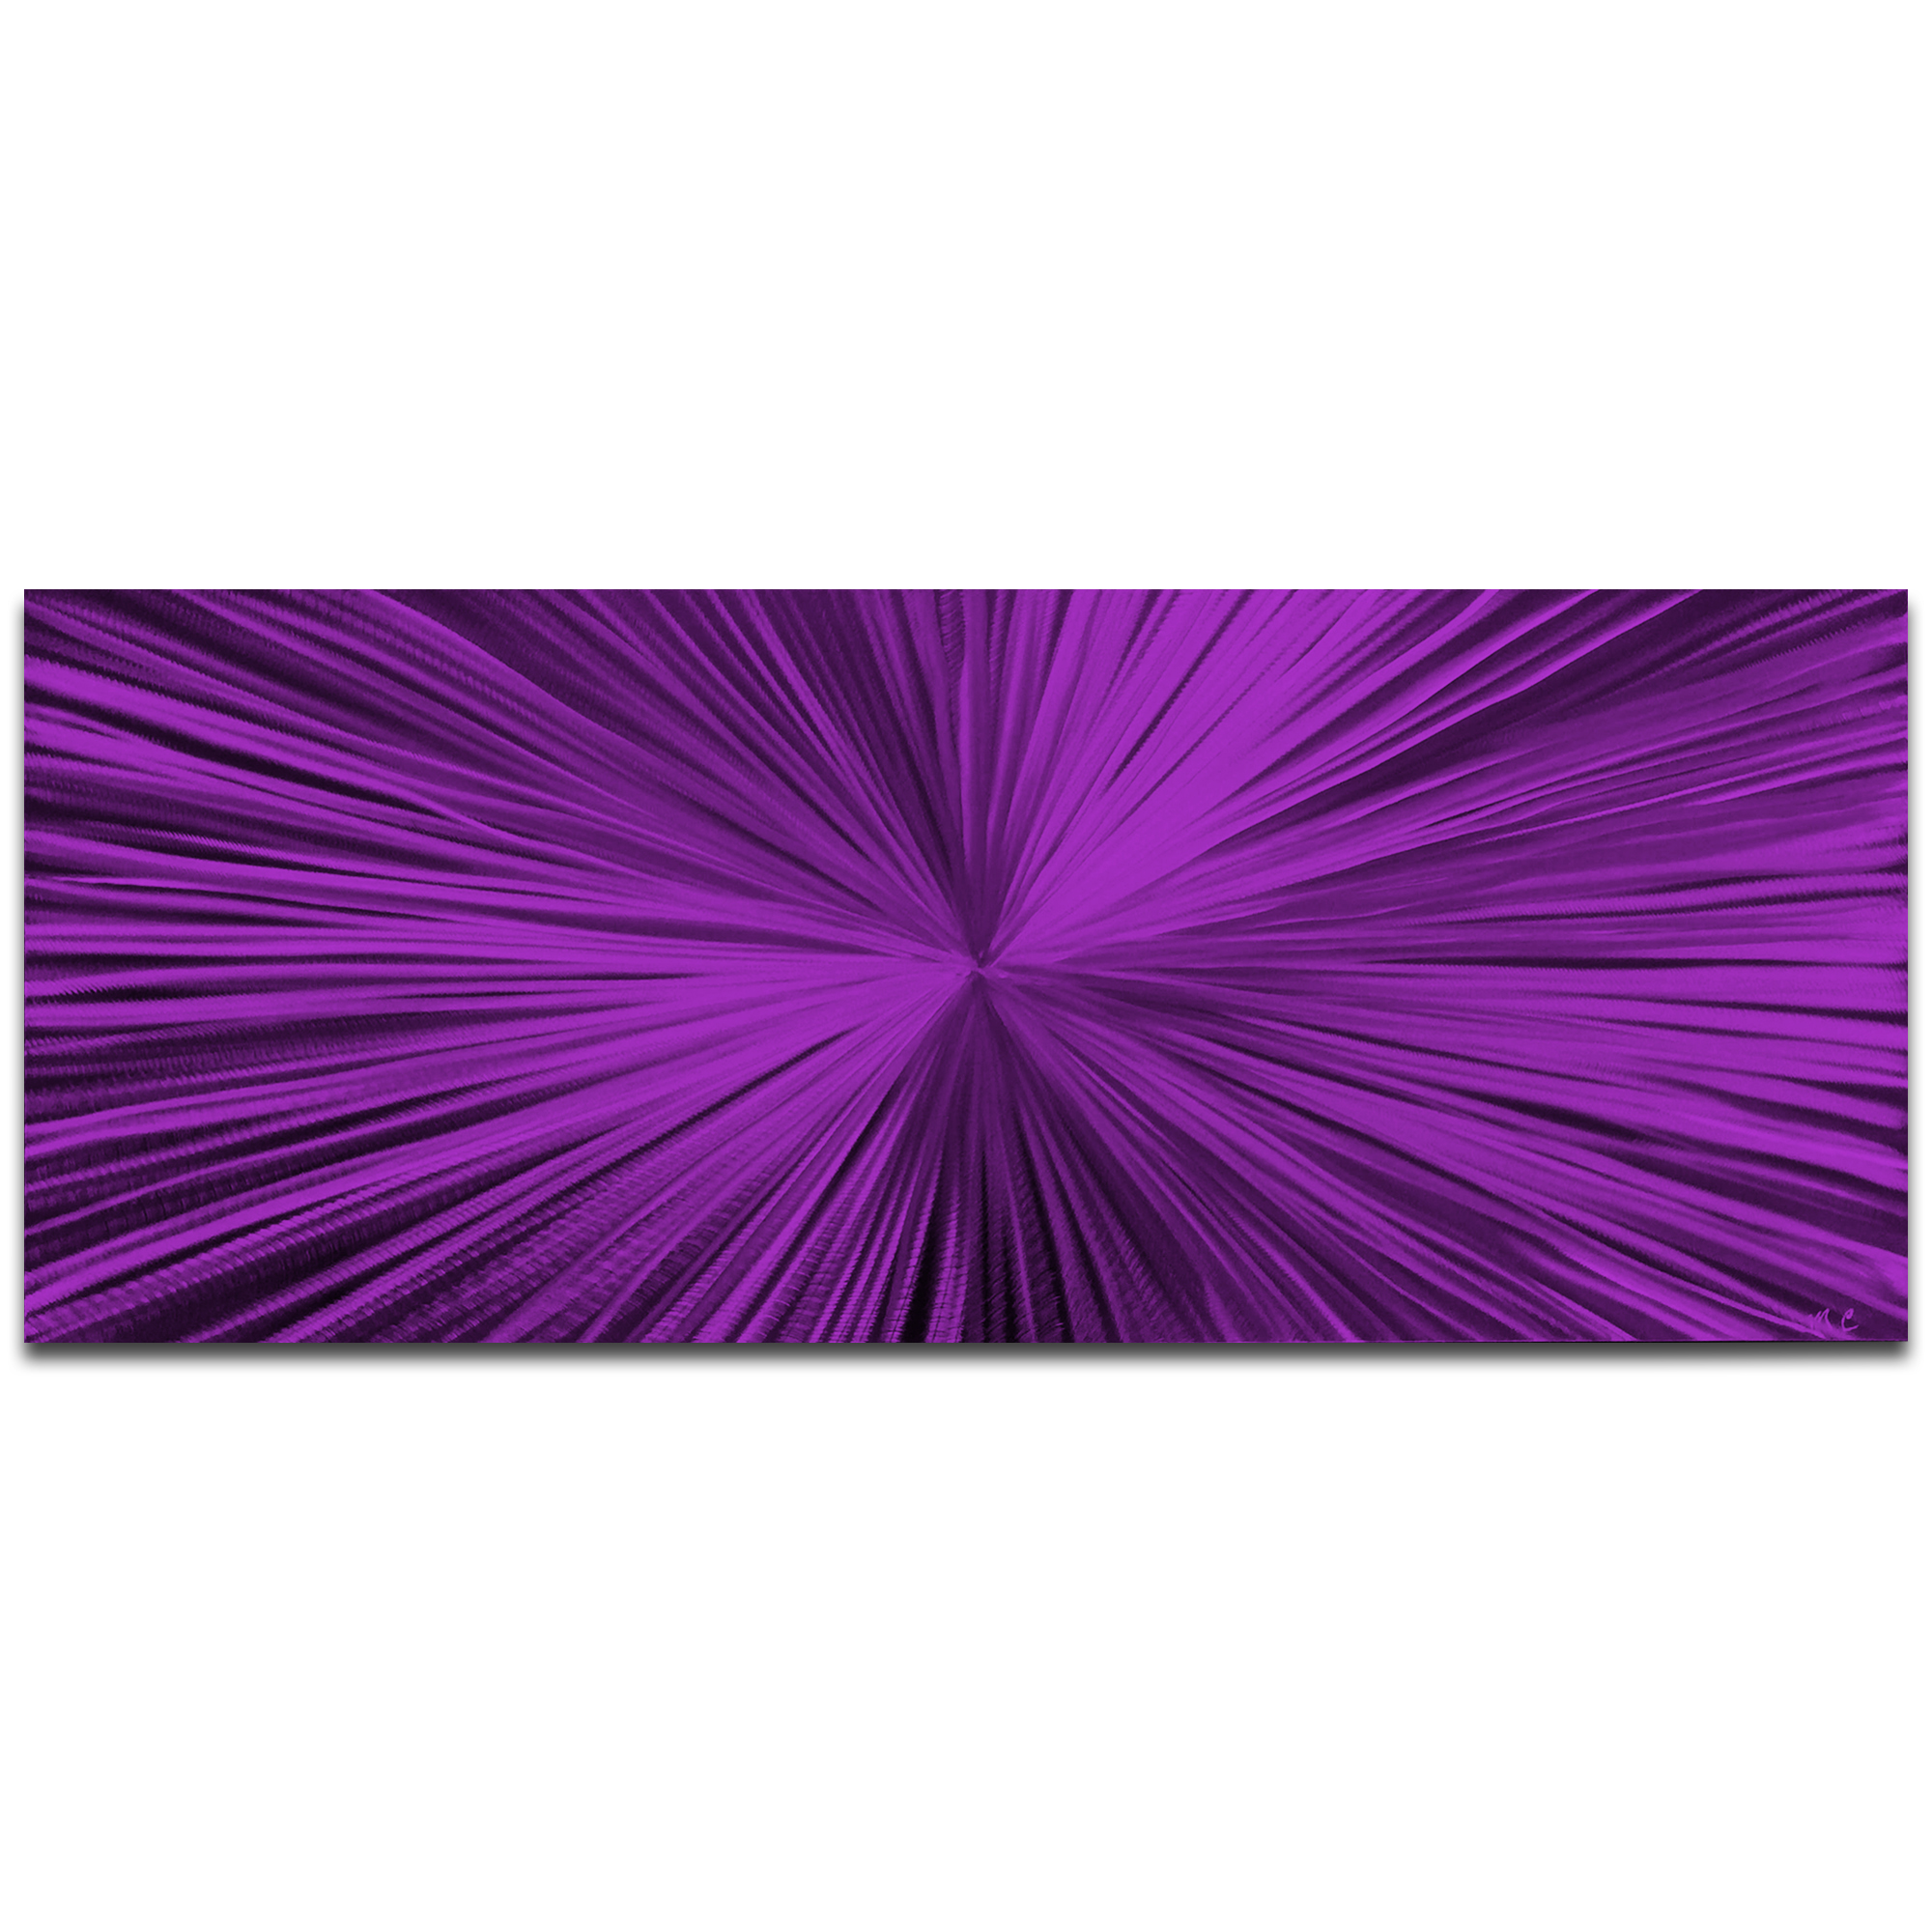 Helena Martin 'Starburst Purple' 60in x 24in Original Abstract Art on Ground and Painted Metal